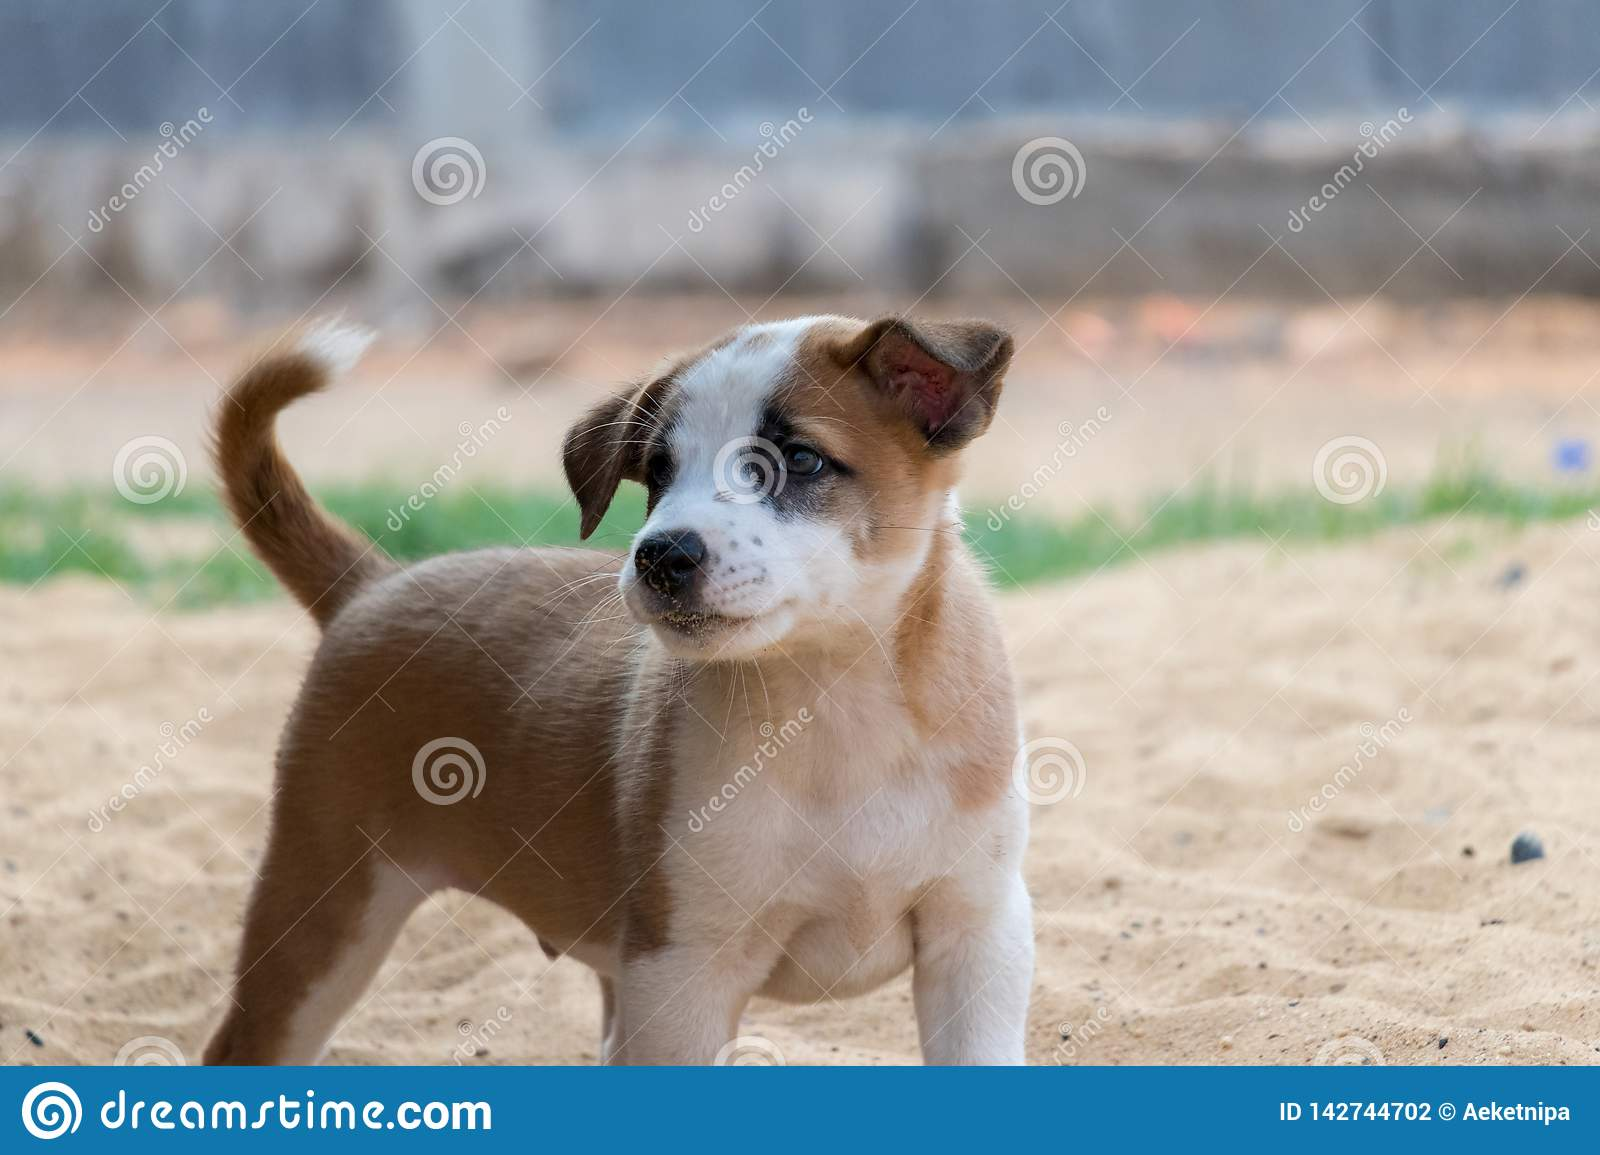 Puppy On The Sand Cute Dog Having Playtime Stock Photo Image Of Puppy Cute 142744702